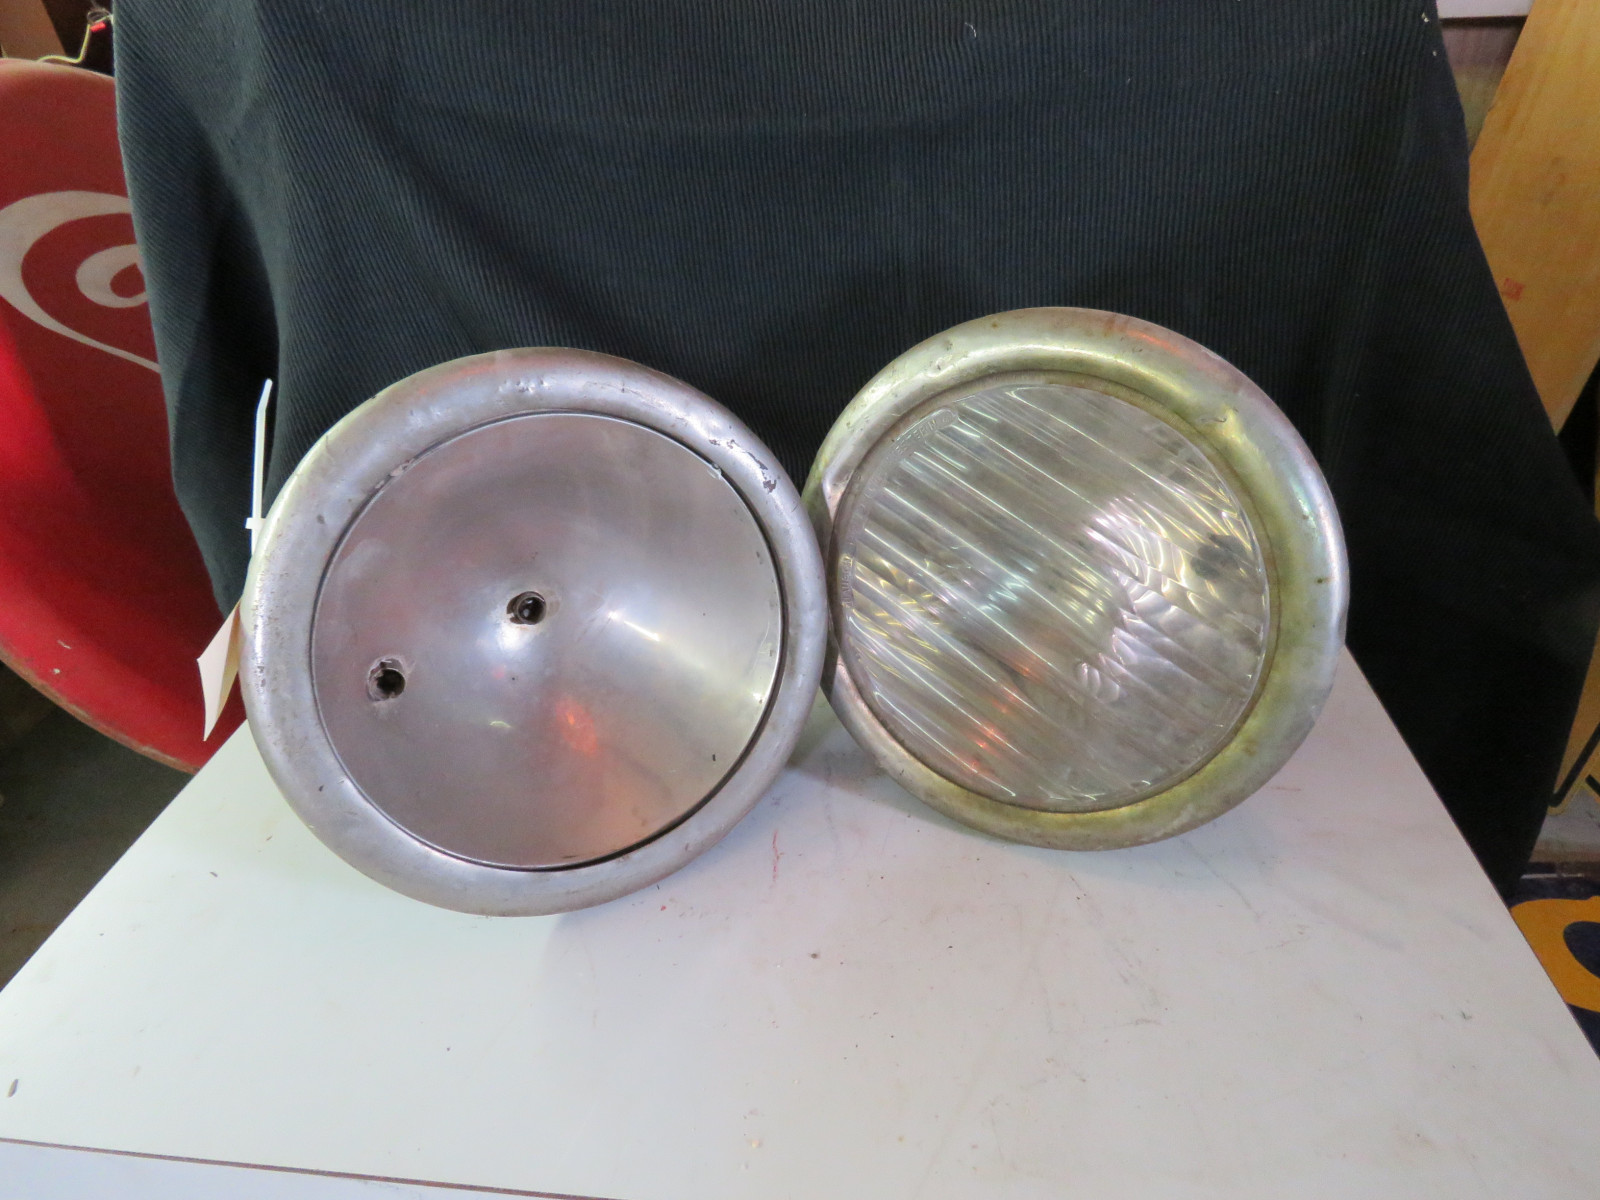 Pair of Vintage Headlights - Image 1